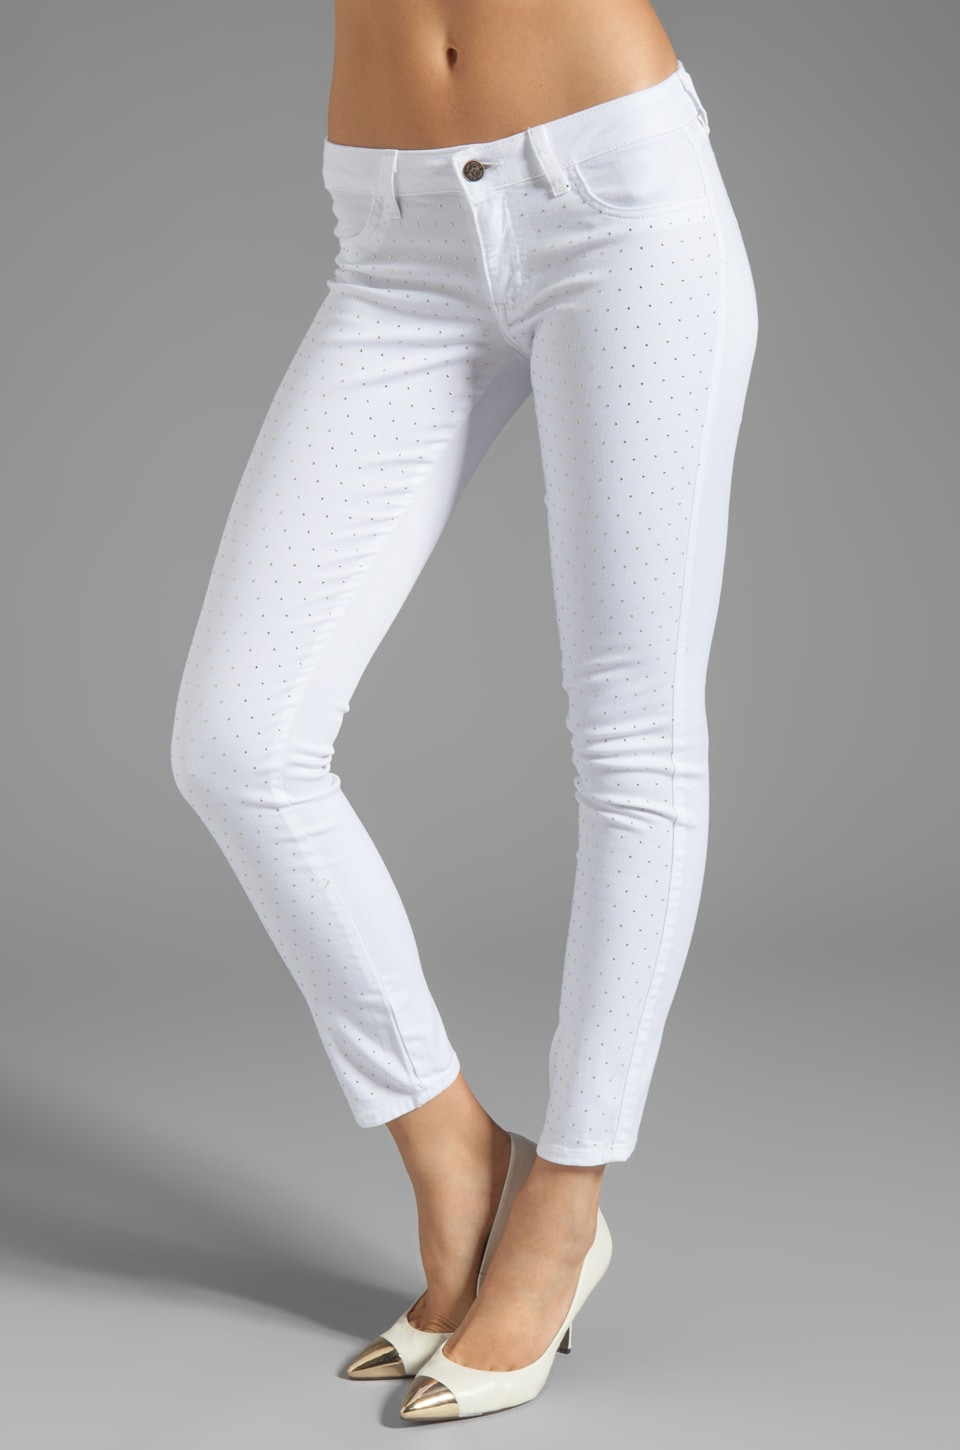 Siwy Hannah Skinny Jean in Shine Bright